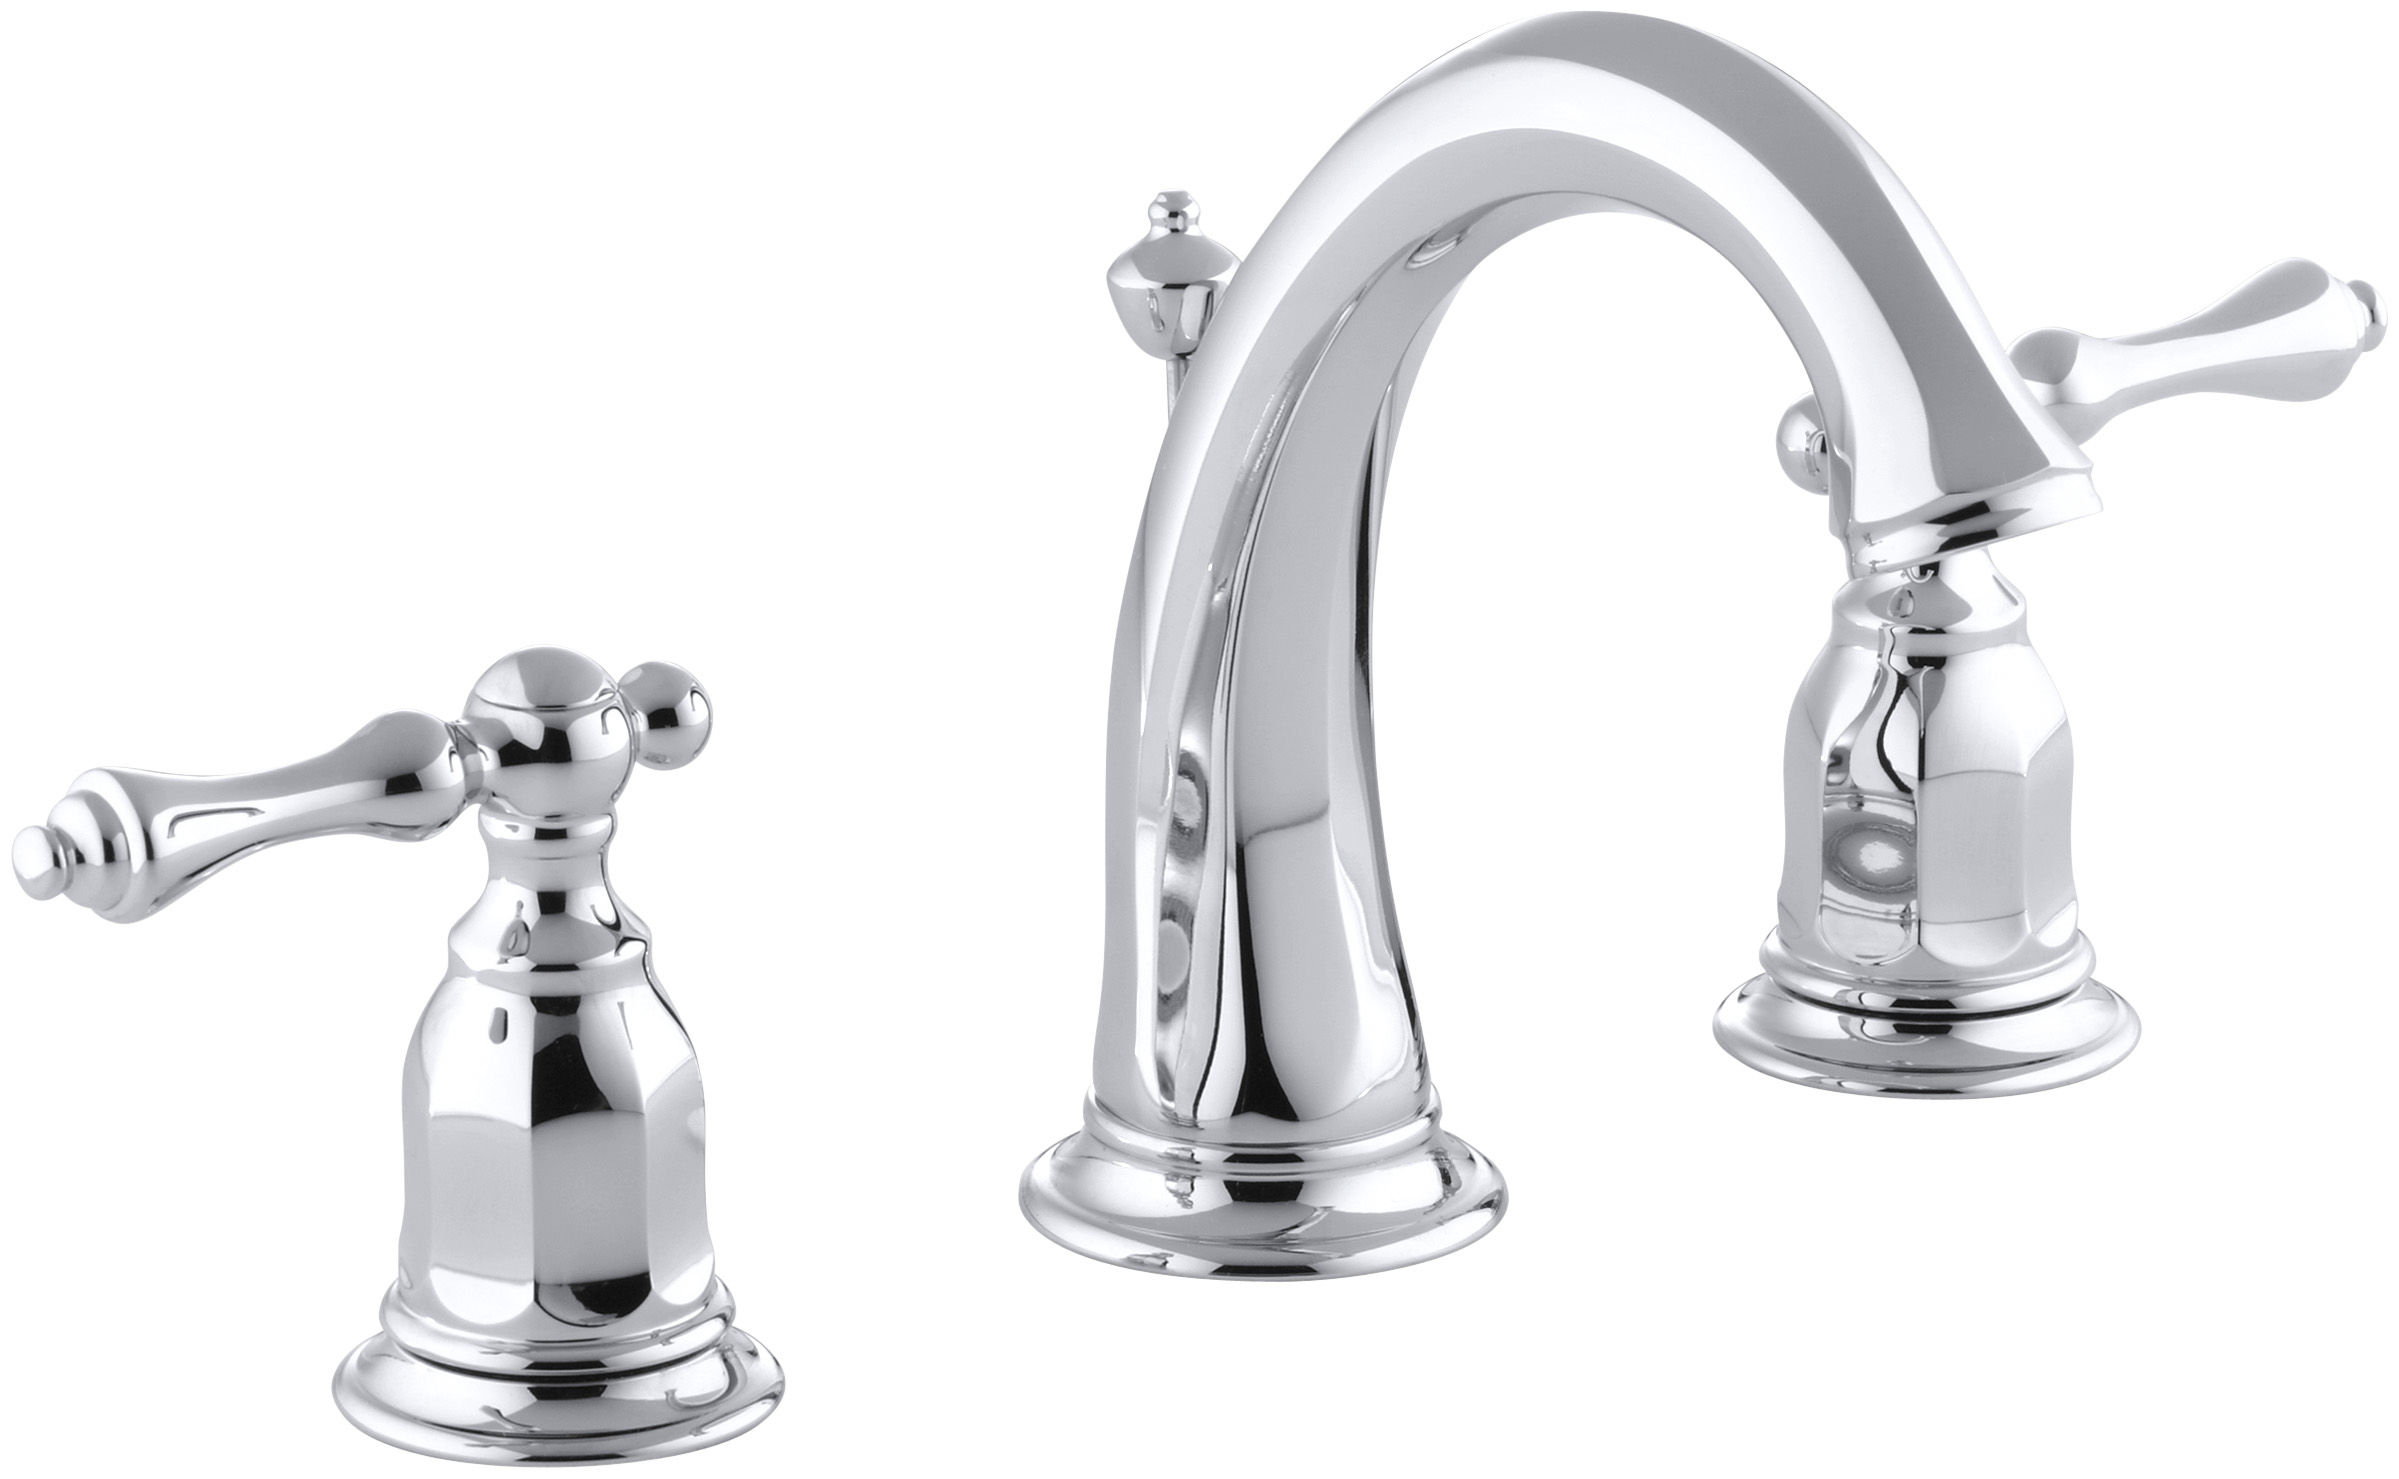 Bathroom Sink Faucets at FaucetDirect.com